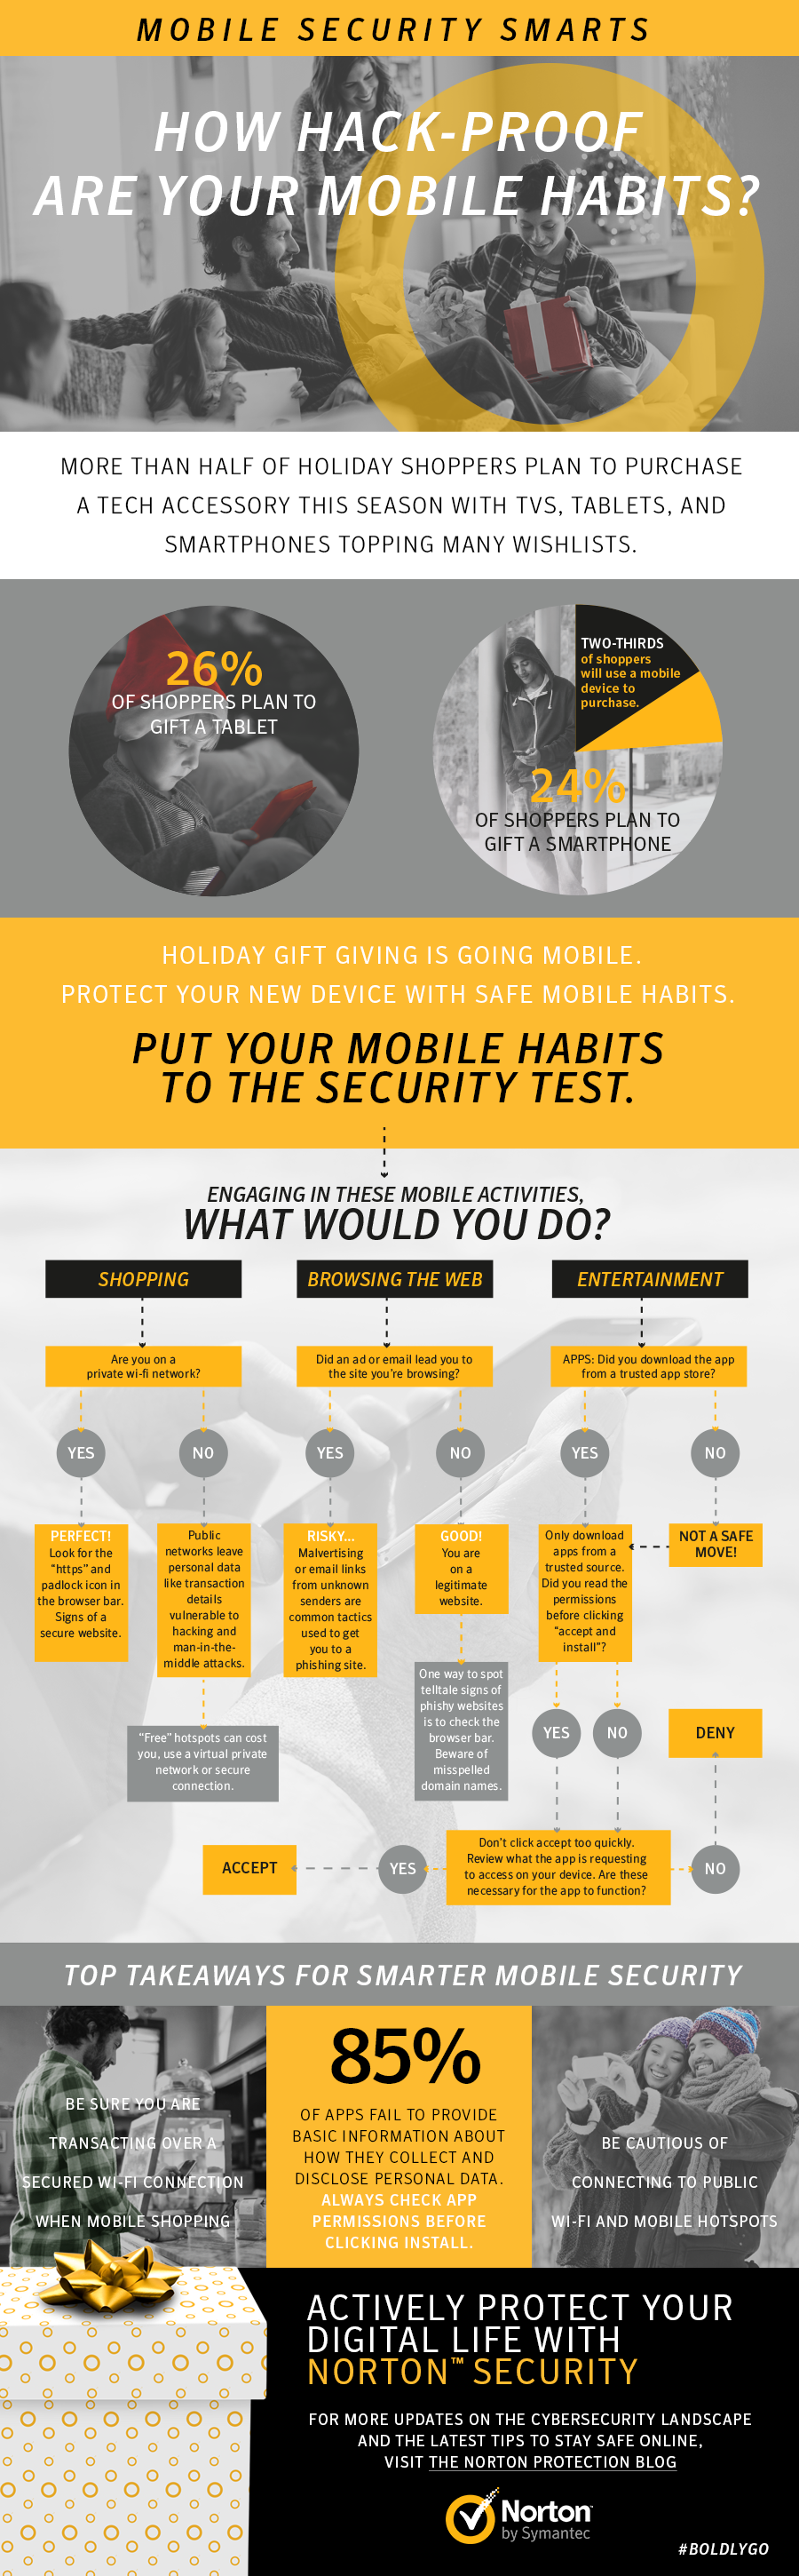 Mobile Security Smarts: How Hack-Proof are Your Mobile Habits?